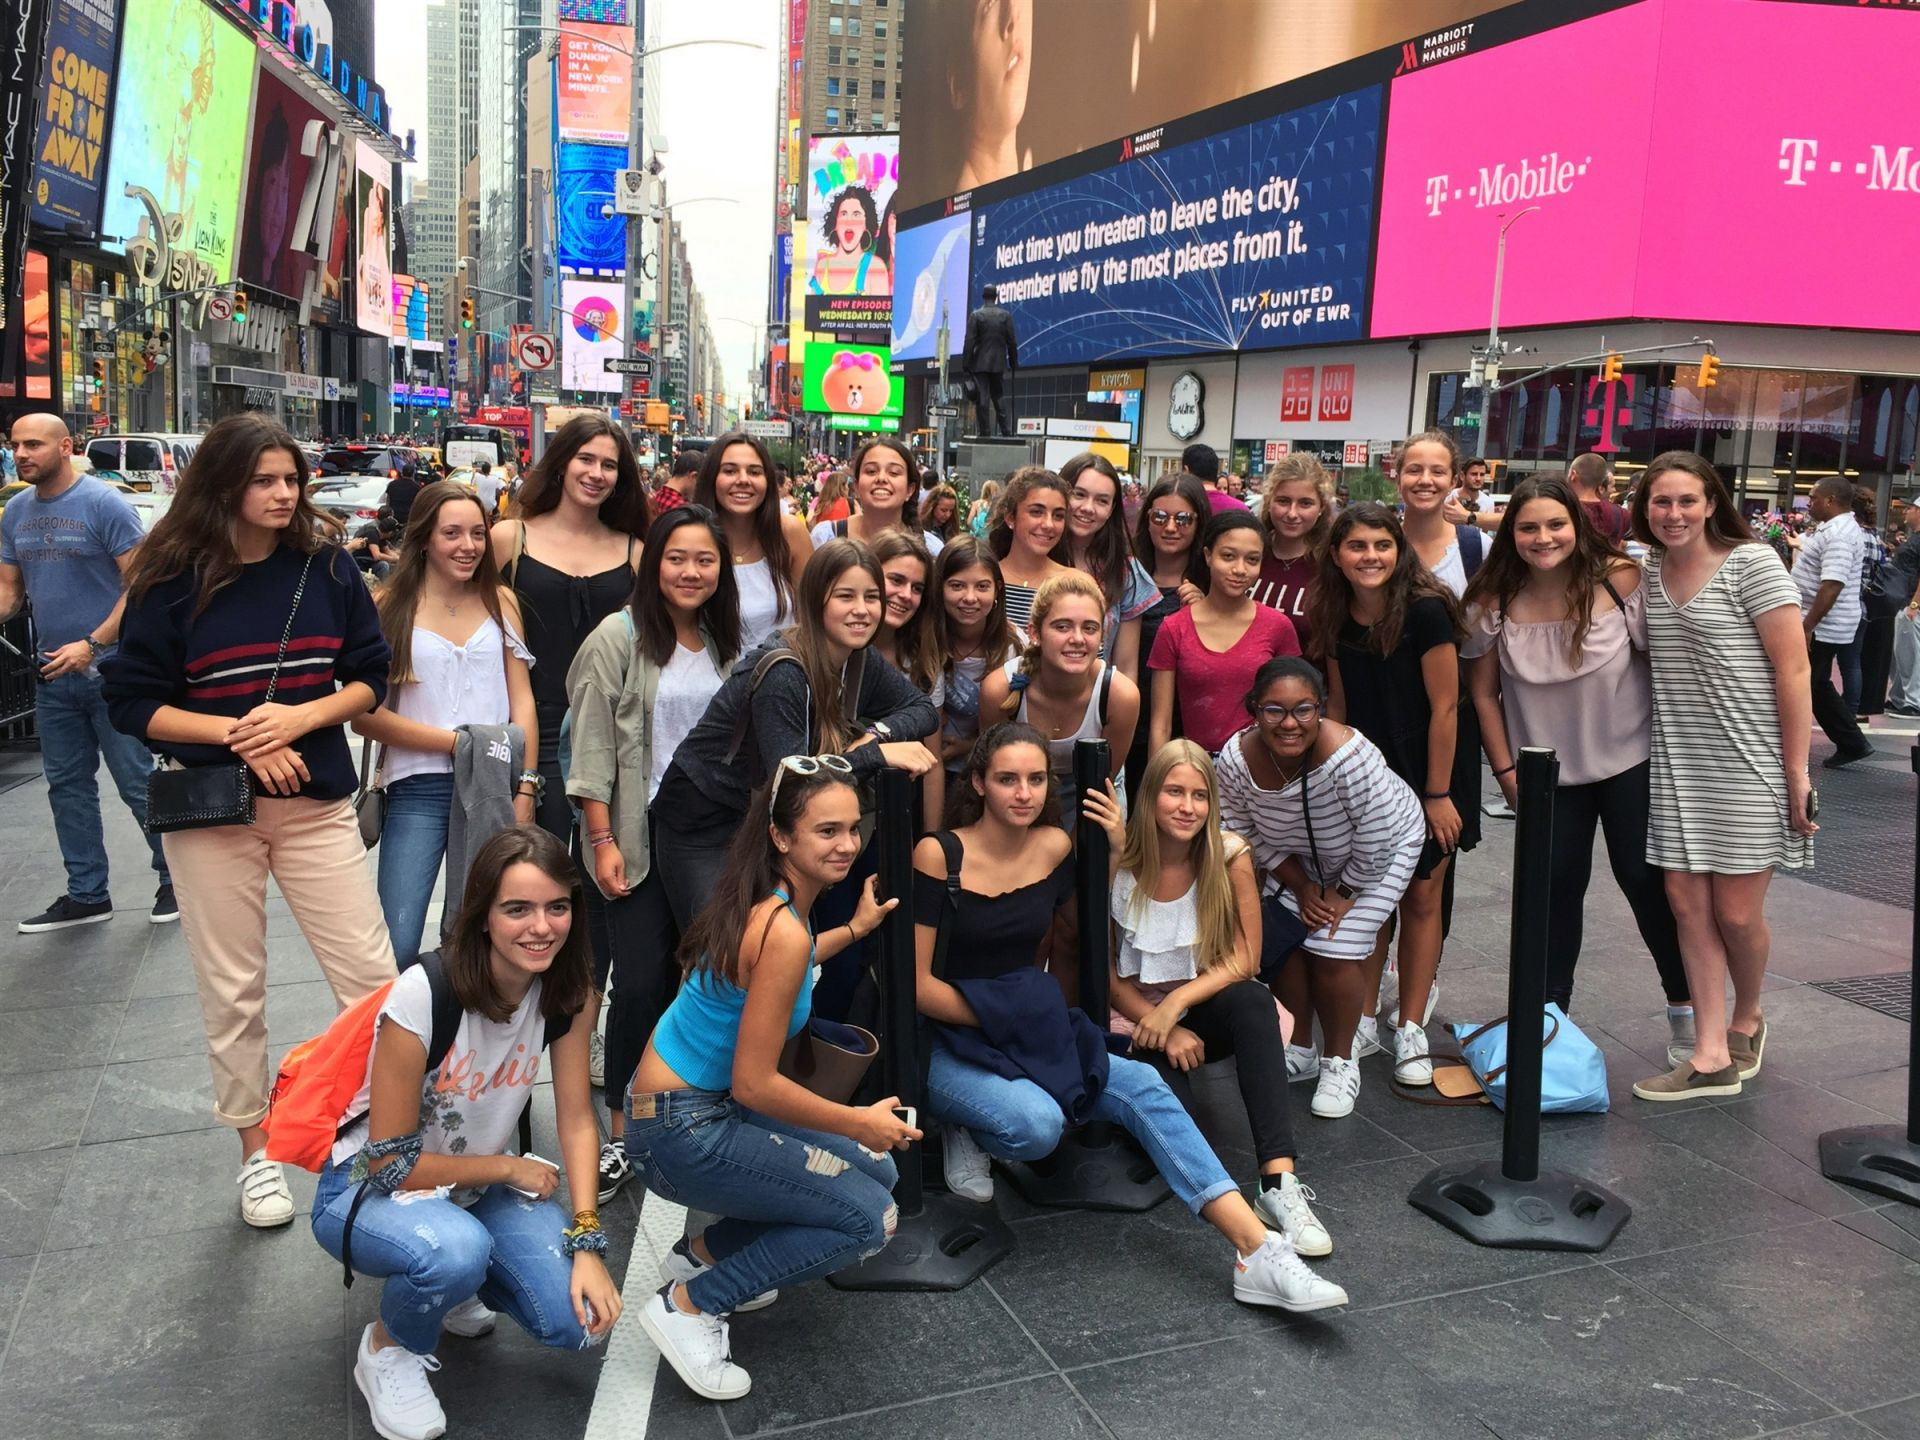 If you're visiting the tristate area from abroad, what better place to go to than Times Square in New York City?